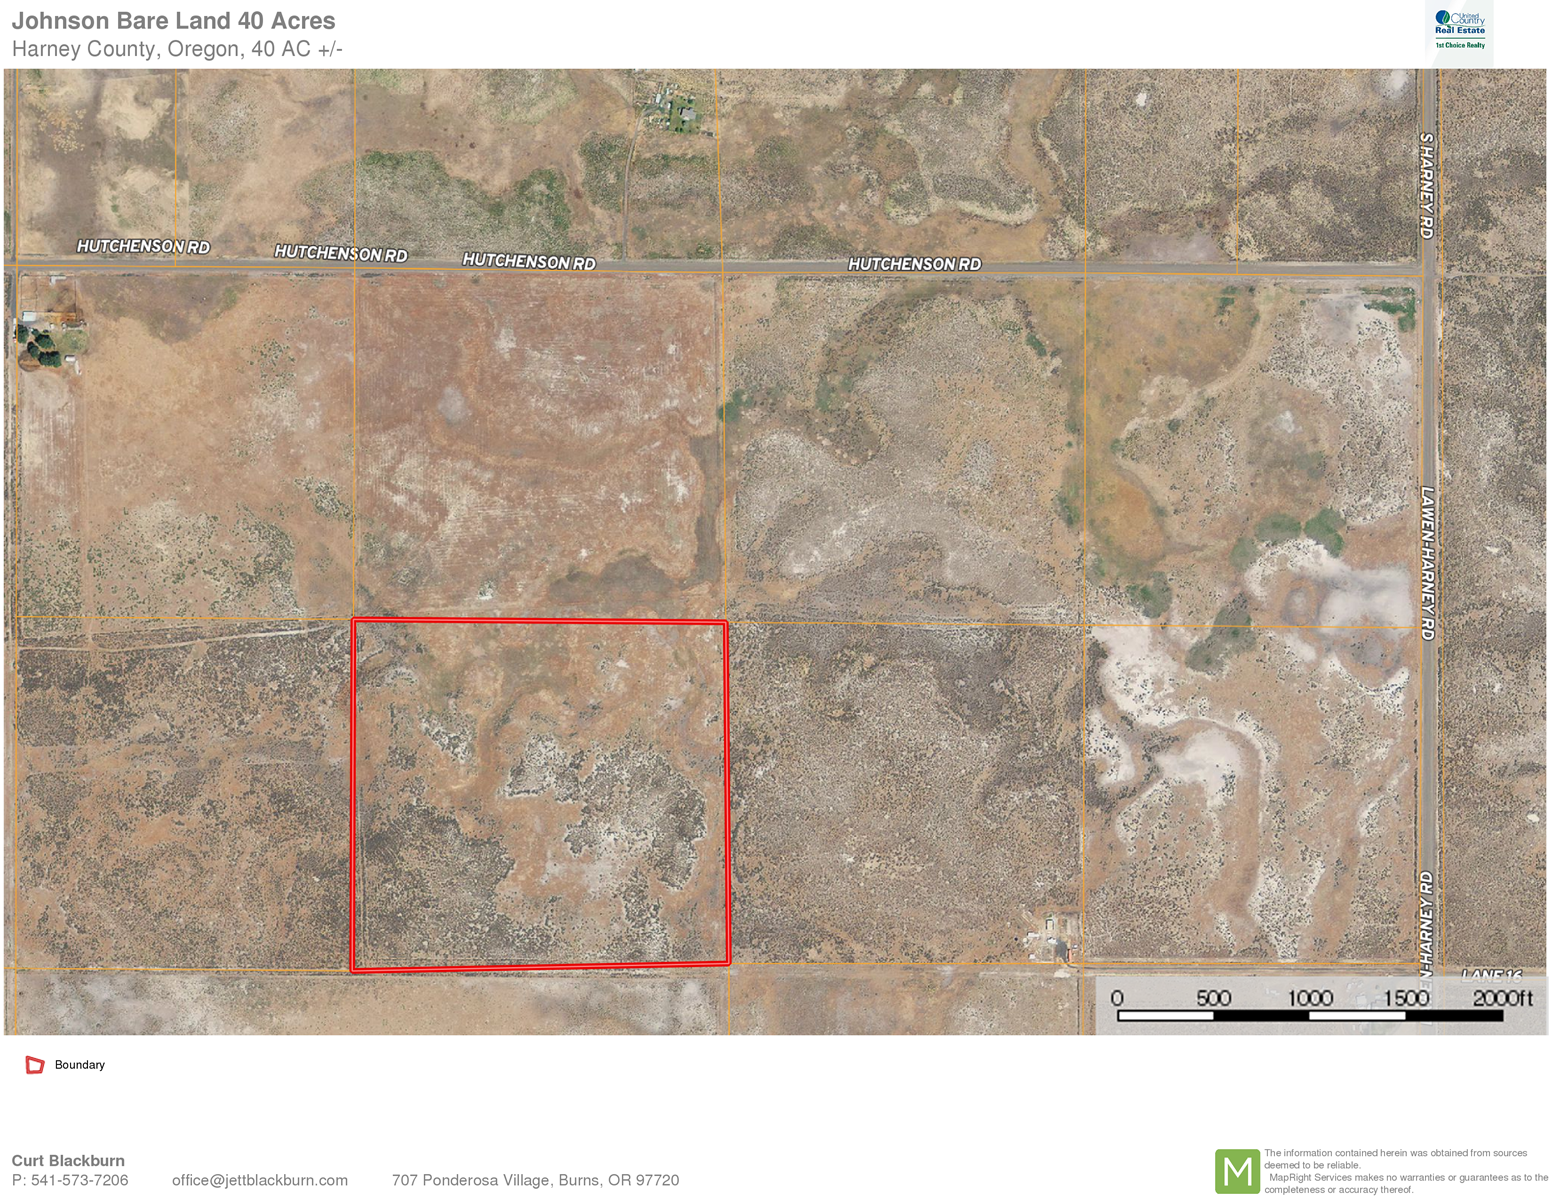 40 ACRES OF BARE LAND FOR SALE!